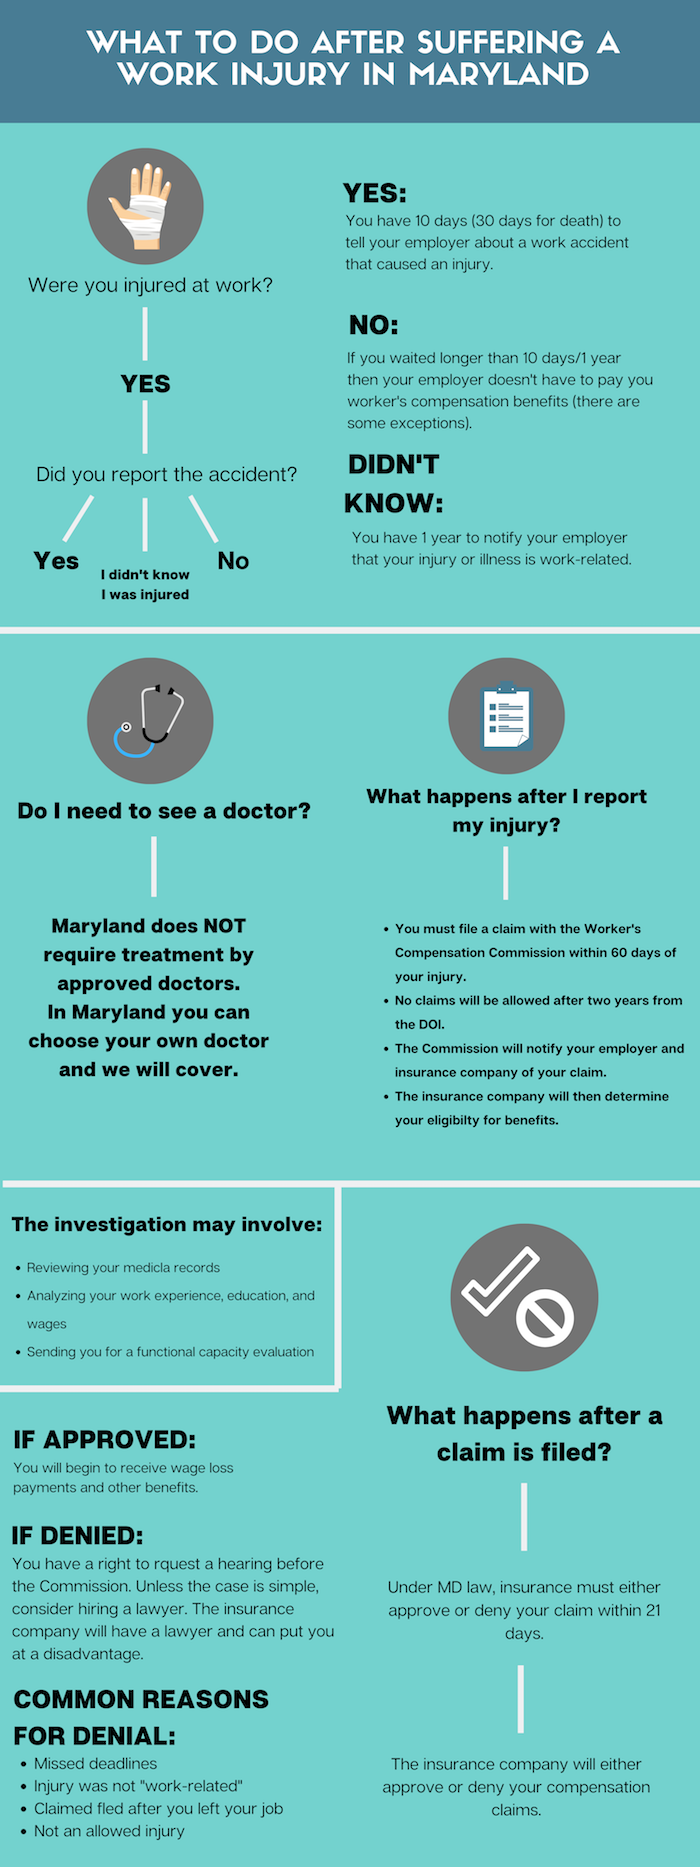 What to do After an Injury in Maryland Infographic